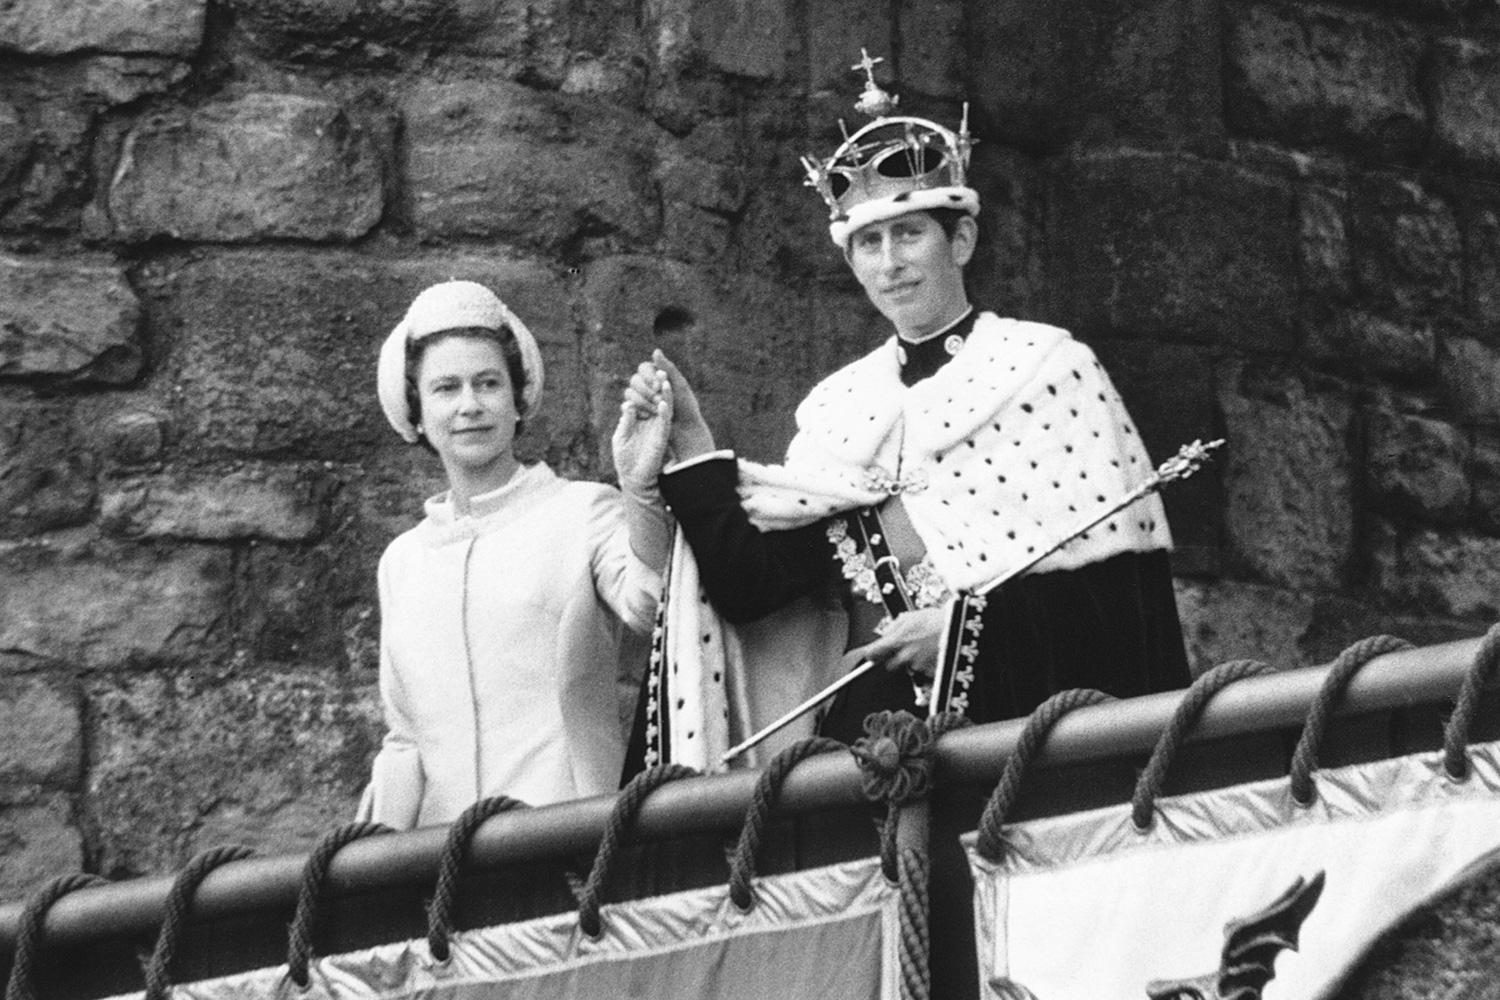 The Queen presents Prince Charles to the people at Caenarvan Castle after his investiture as Prince of Wales. | Location: Caernarvan, Gwynedd, Wales, UK